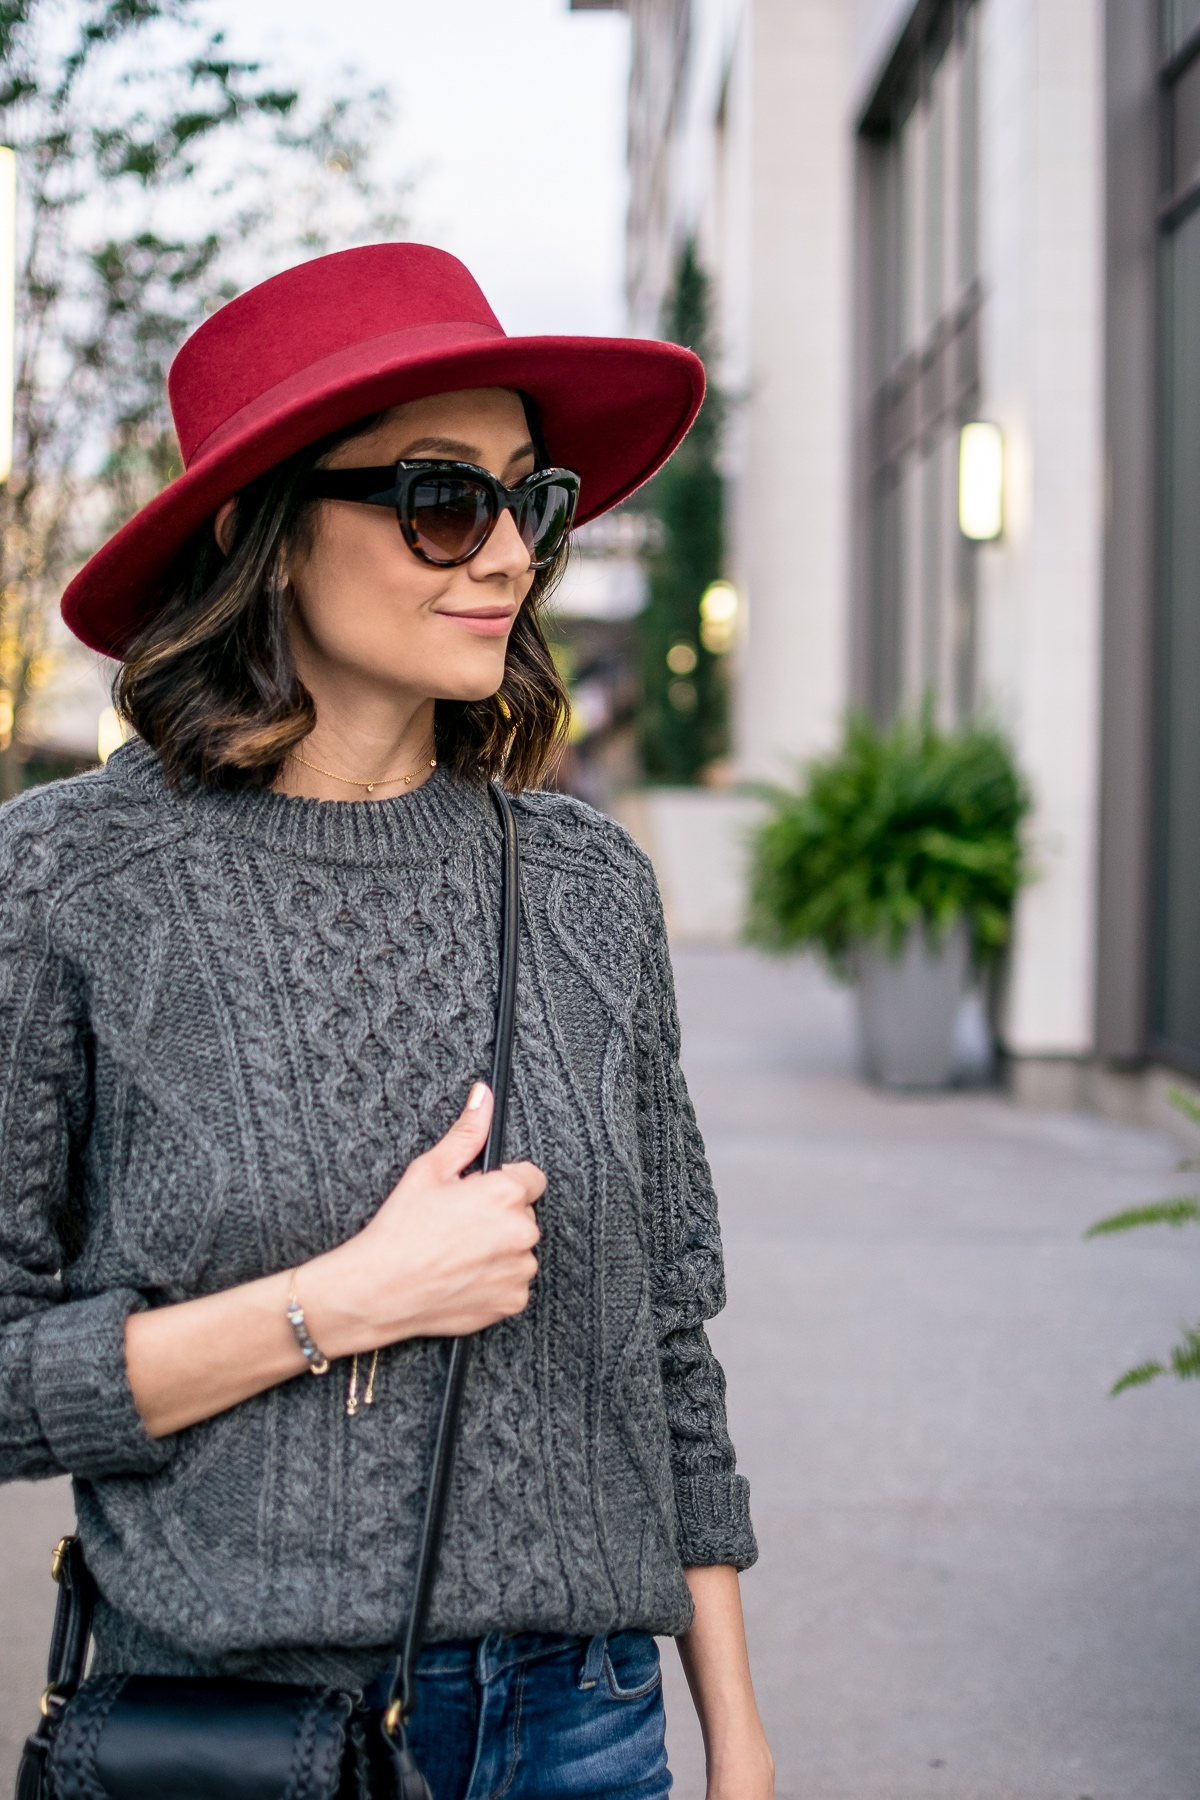 Style blogger Lilly Beltran of Daily Craving wearing a red boater hat